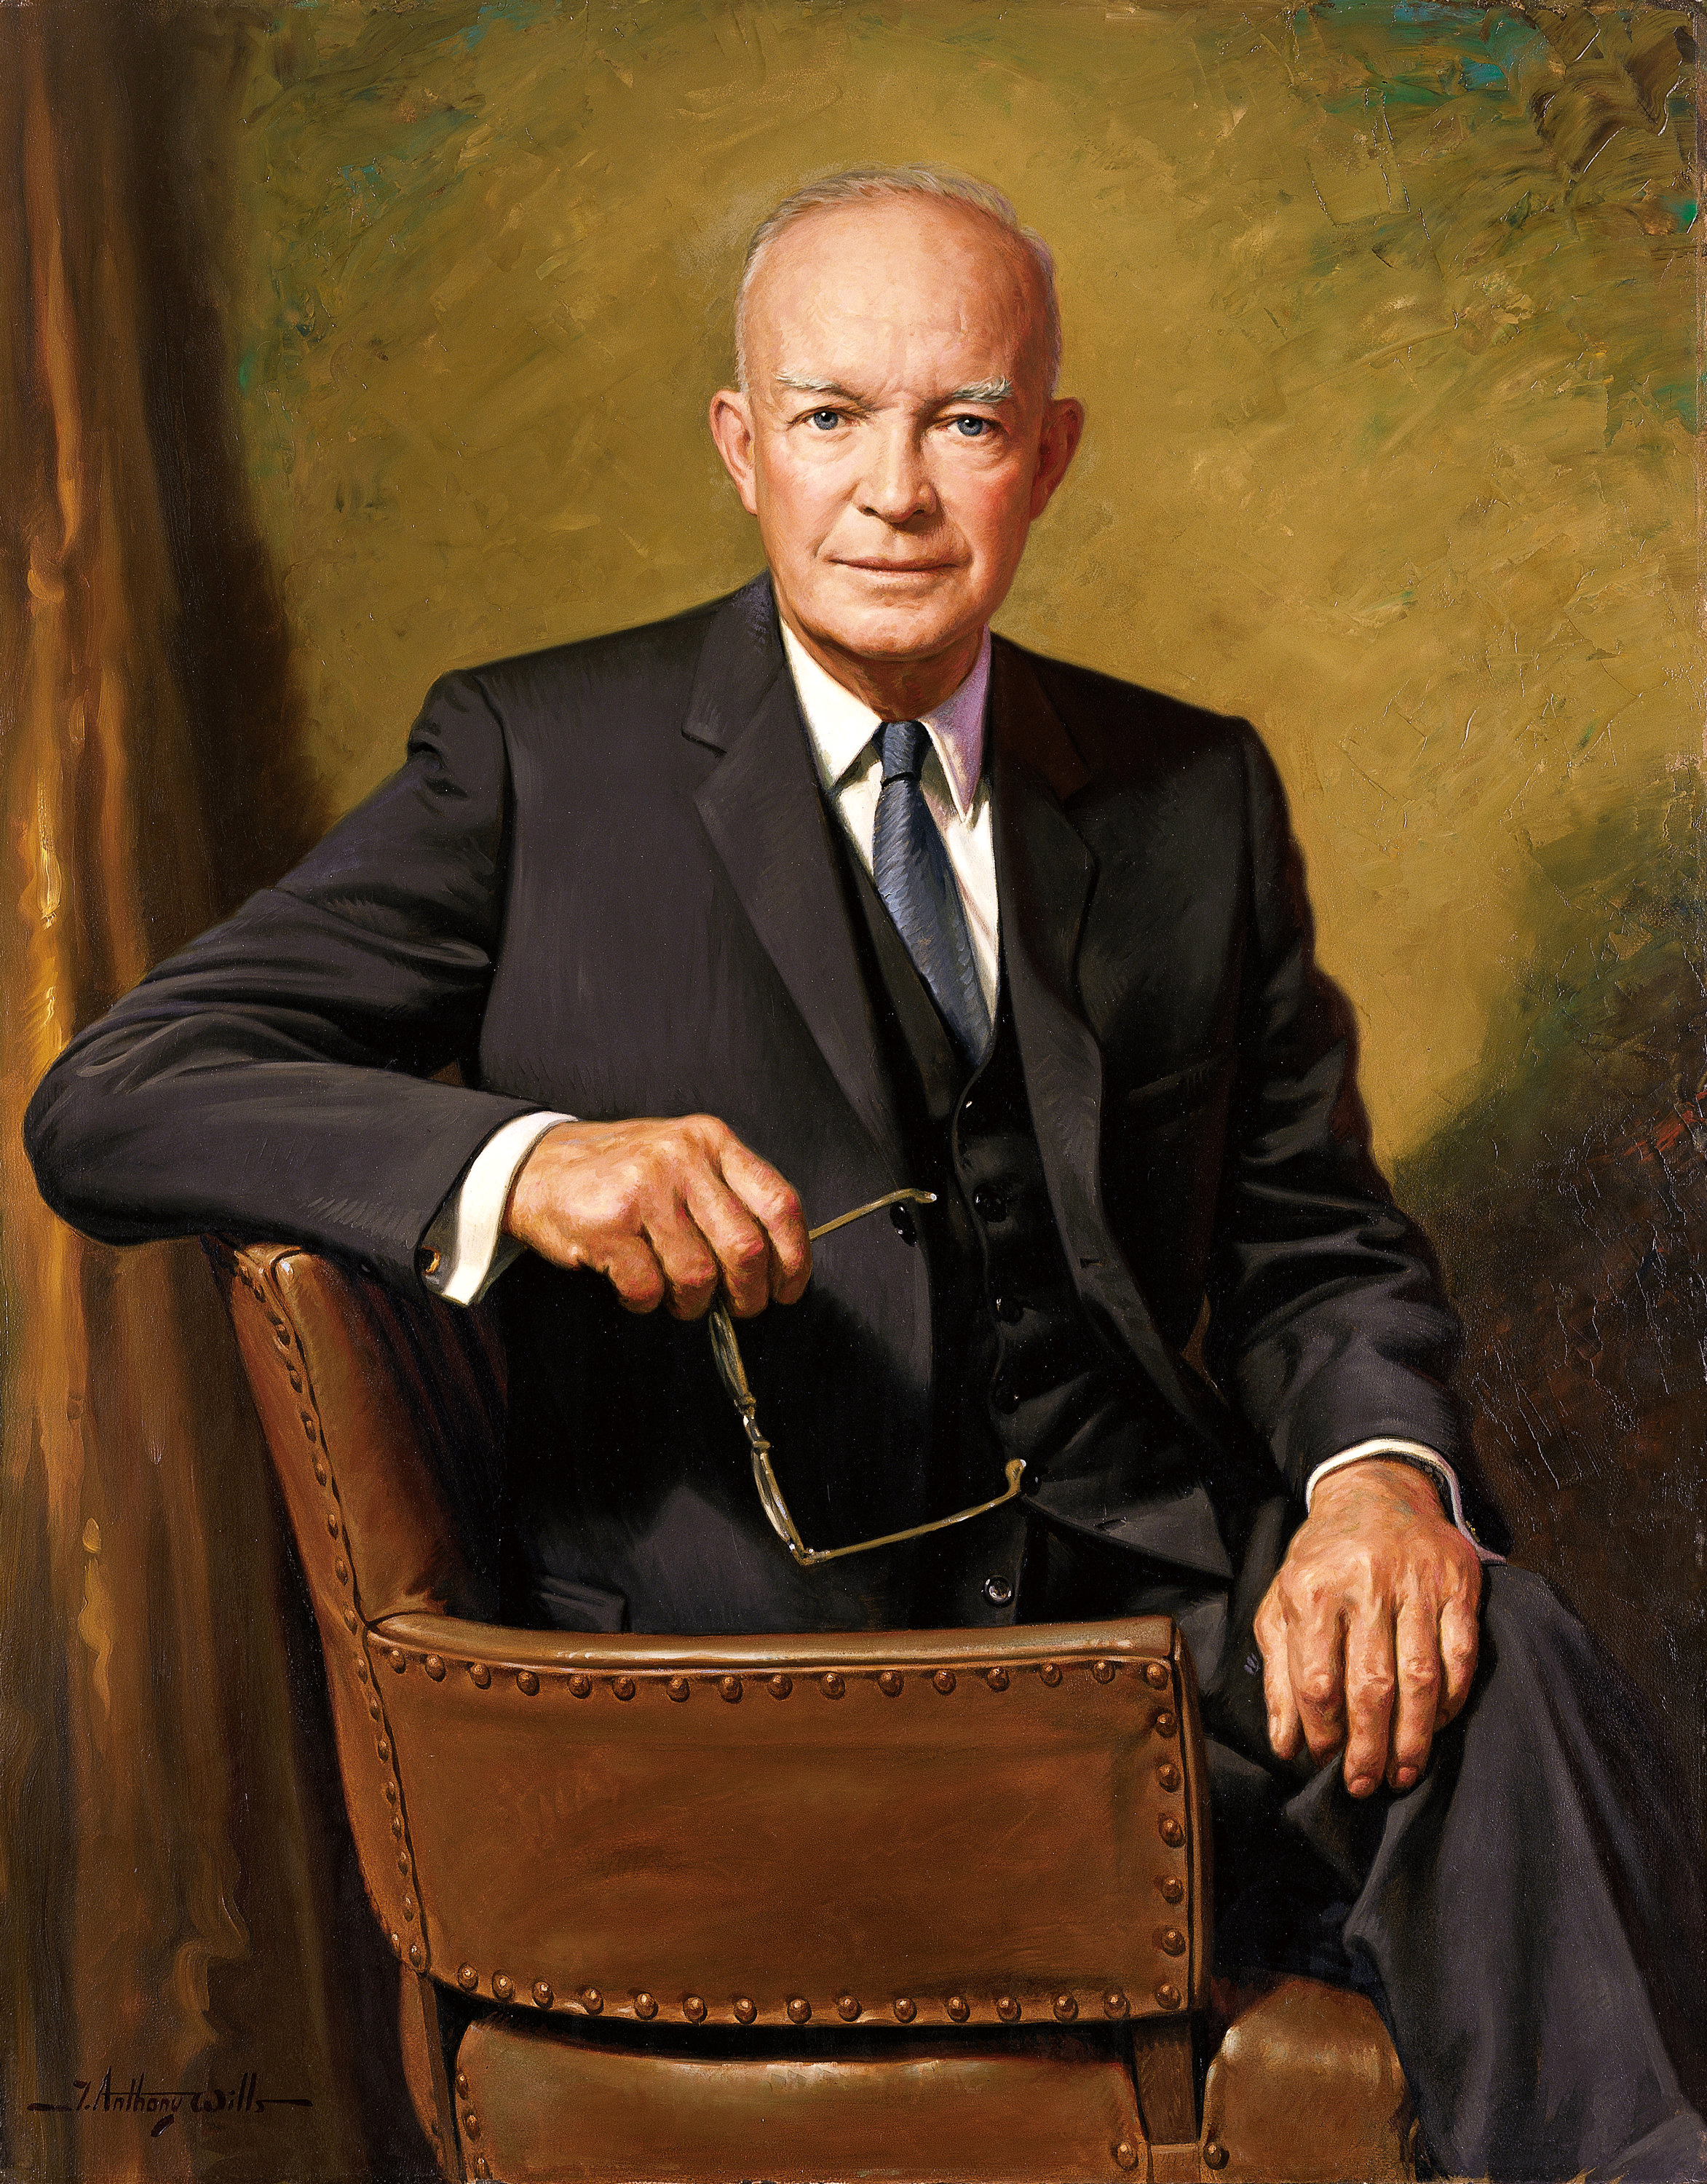 """essay on dwight d eisenhower President dwight d eisenhower didn't sound too happy about that """"the supreme court has spoken and i am sworn to uphold the constitutional processes in this country and i will obey."""